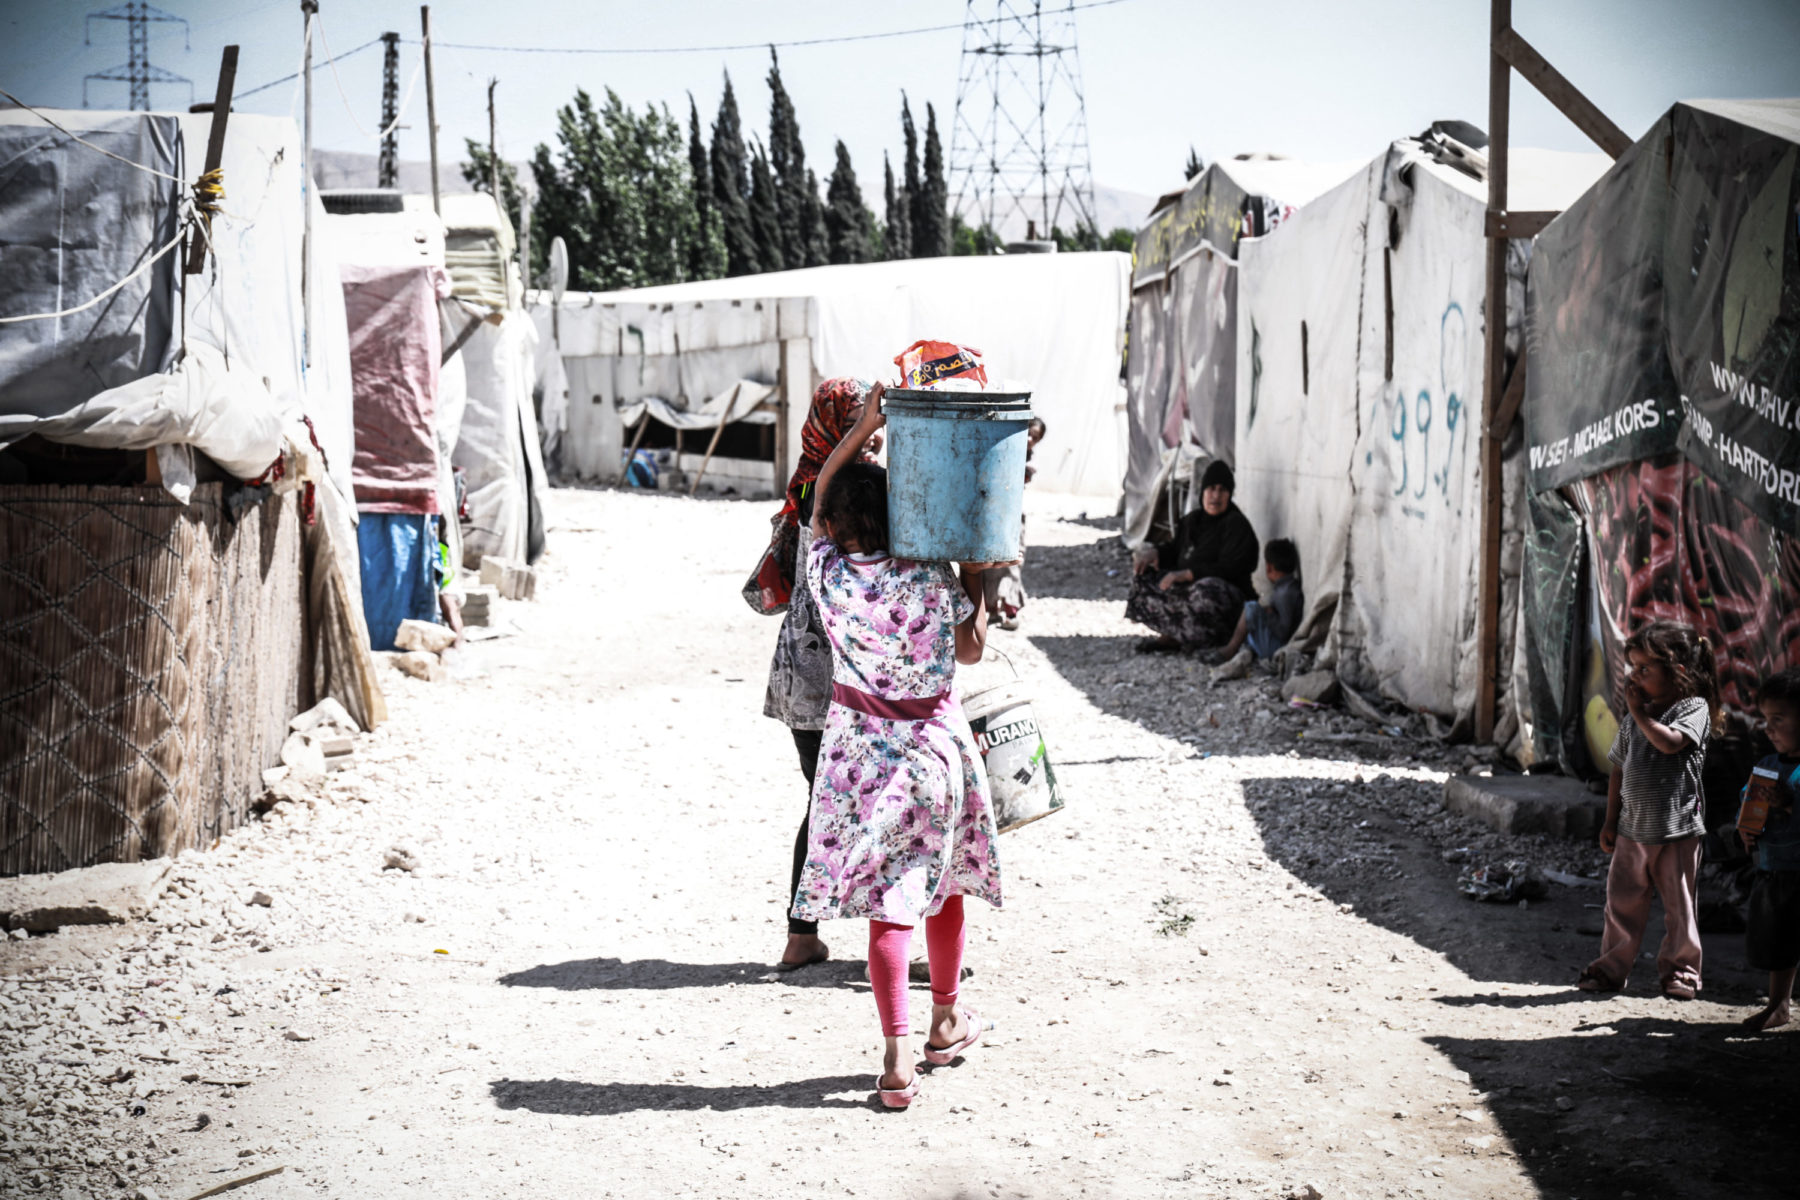 Syrian refugee crisis: Limitations to protection in the region